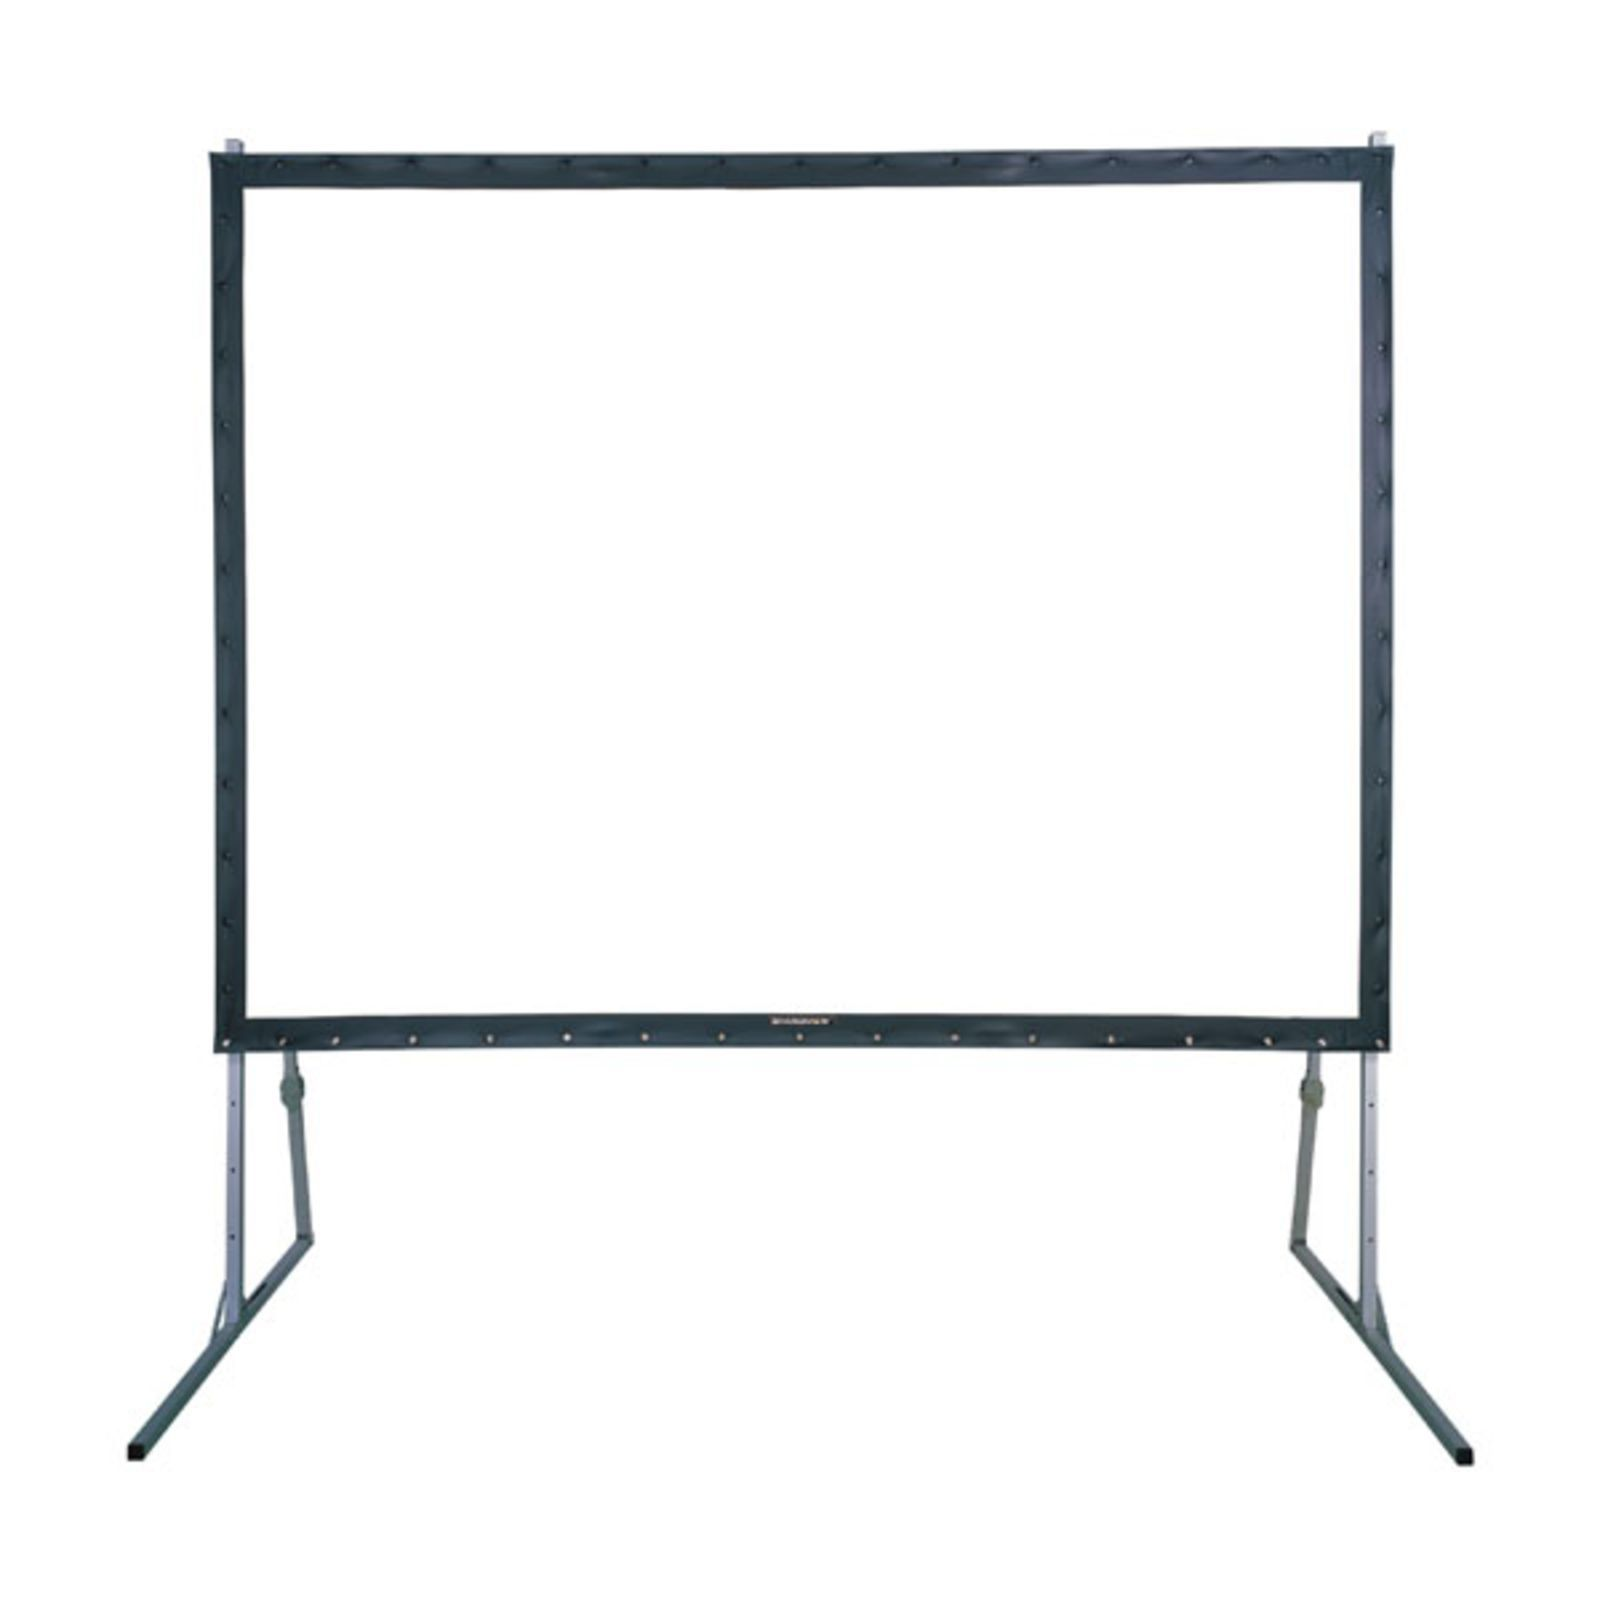 DMT Frame Projector Screen 243x182 cm Fast-Fold incl. Transport Case Produktbillede